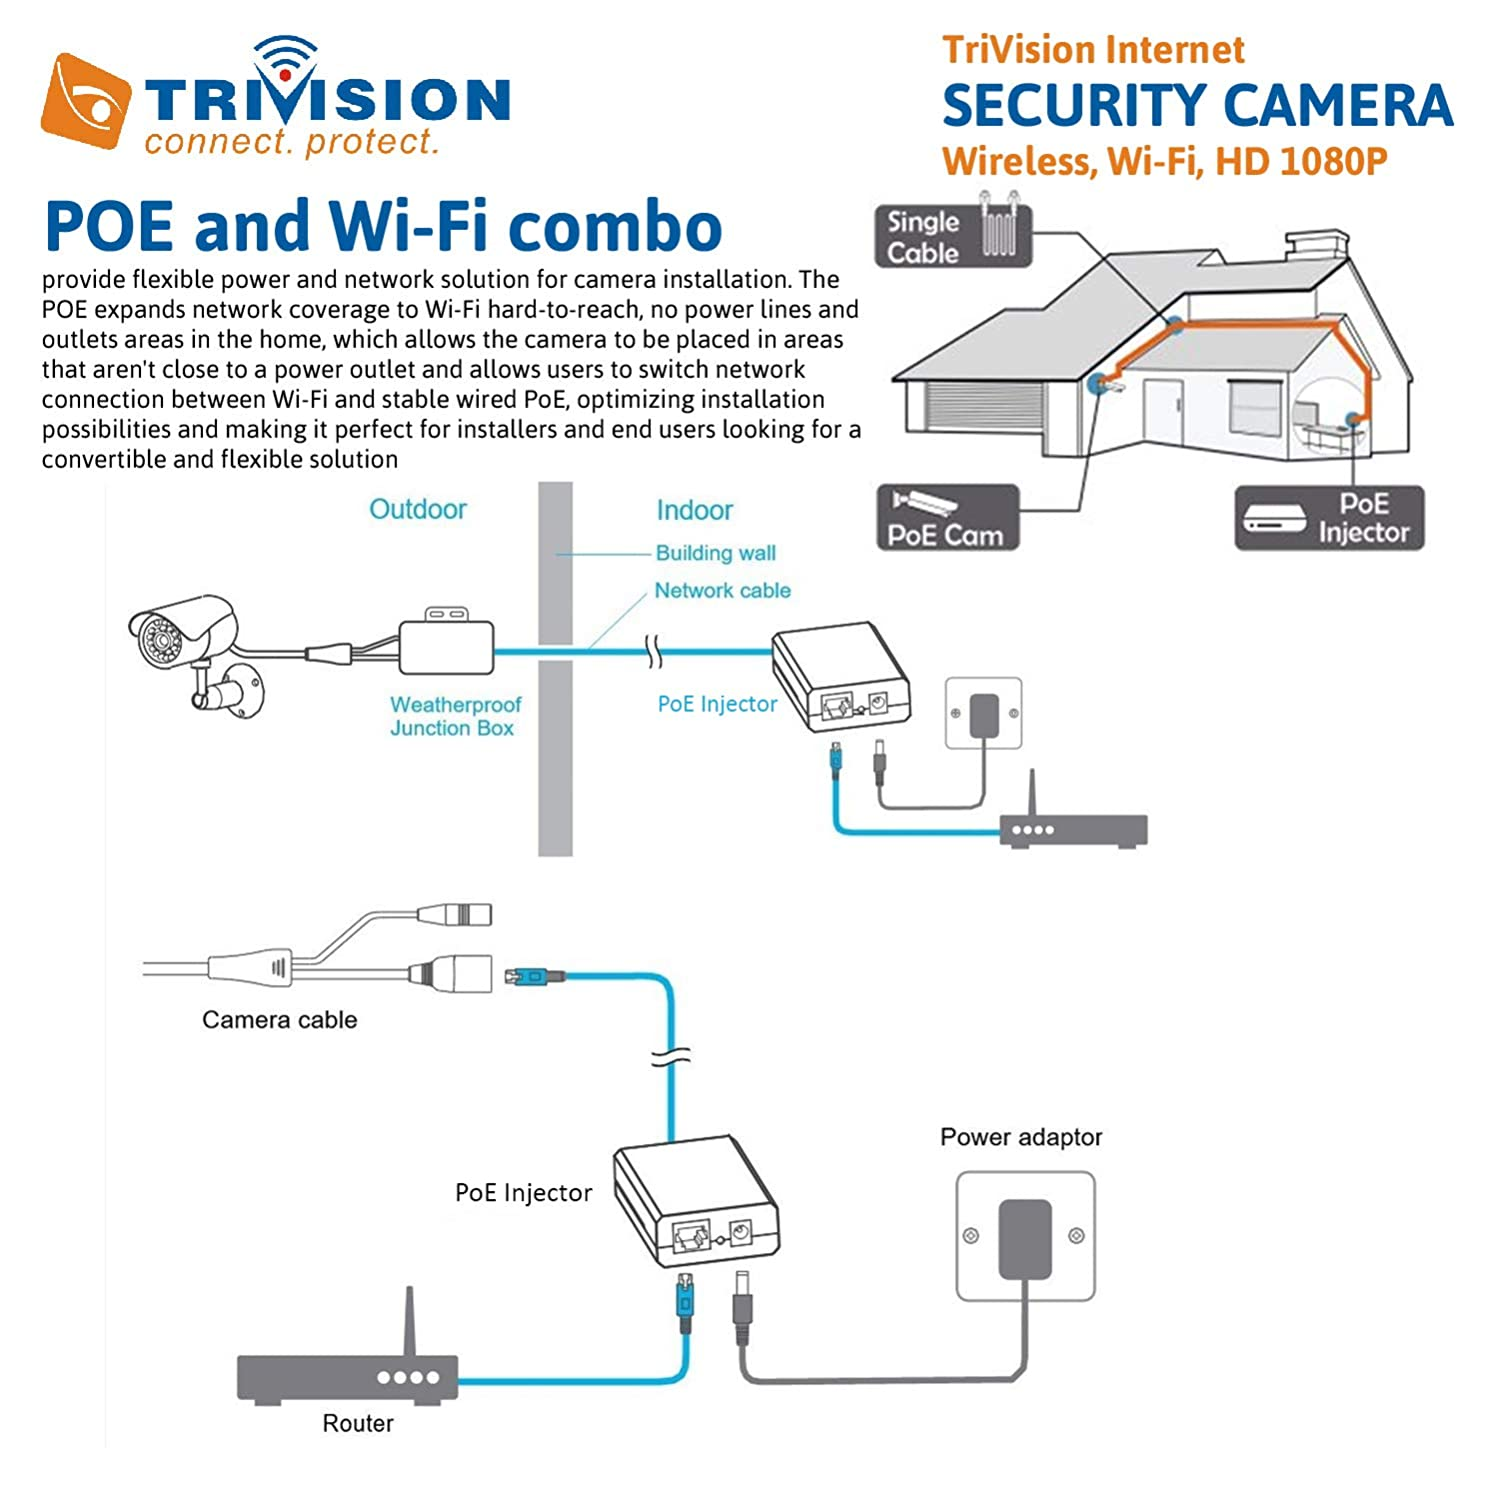 Trivision Outdoor Security Camera Wireless Wi Fi Poe Warn Control Diagram Hd 1080p Ip66 Waterproof Wide View Angle 15m Ir Night Vision Free App For Iphone